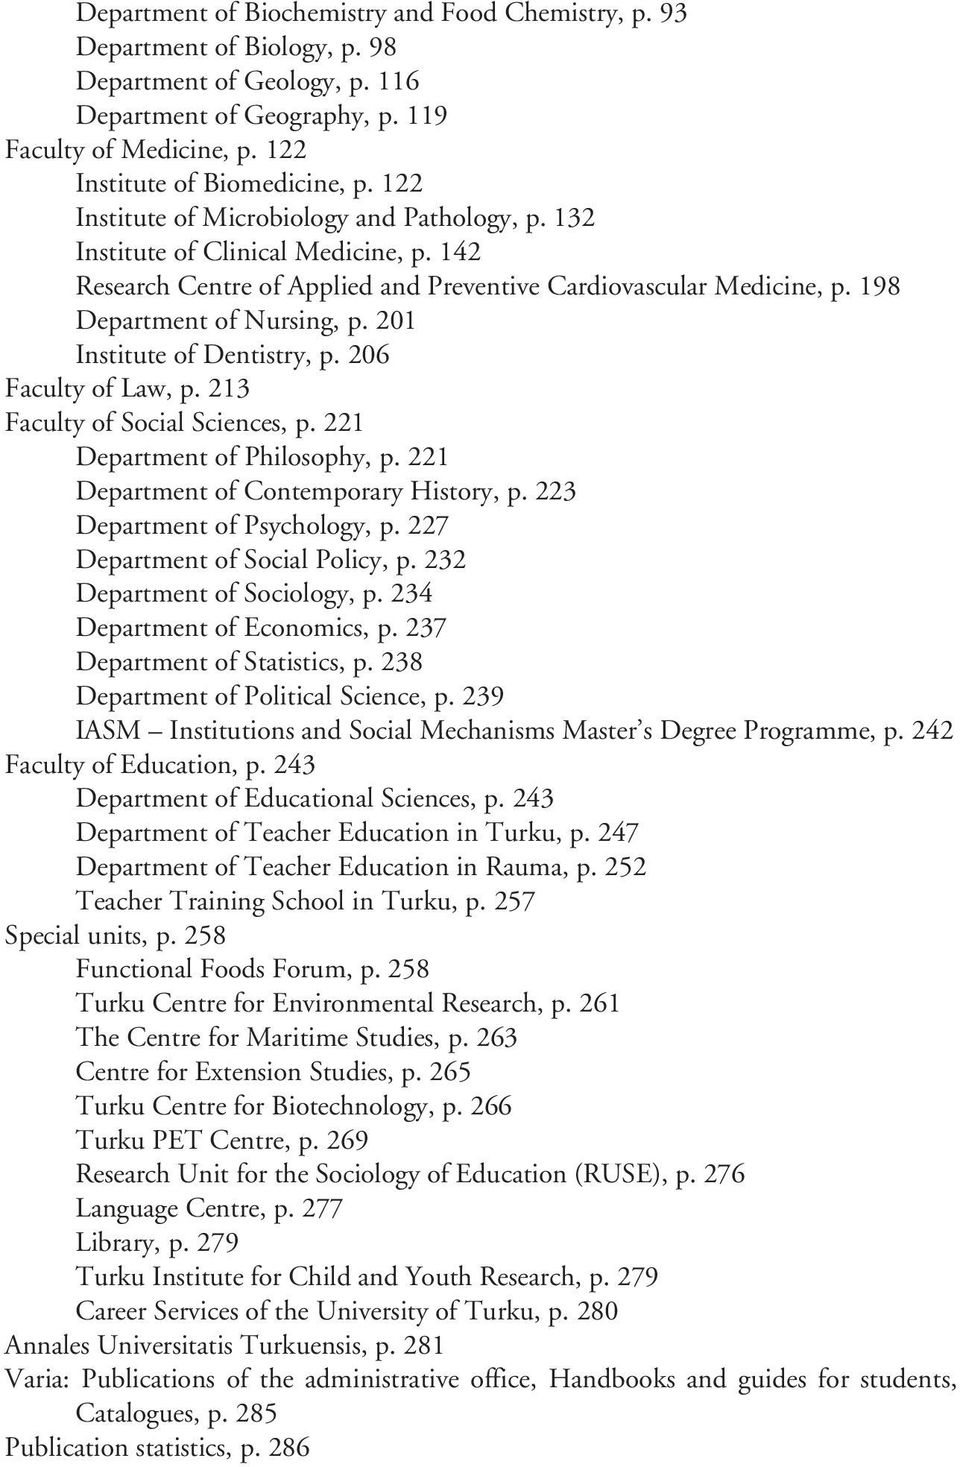 20 Institute of Dentistry, p. 206 Faculty of Law, p. 23 Faculty of Social Sciences, p. 22 Department of Philosophy, p. 22 Department of Contemporary History, p. 223 Department of Psychology, p.